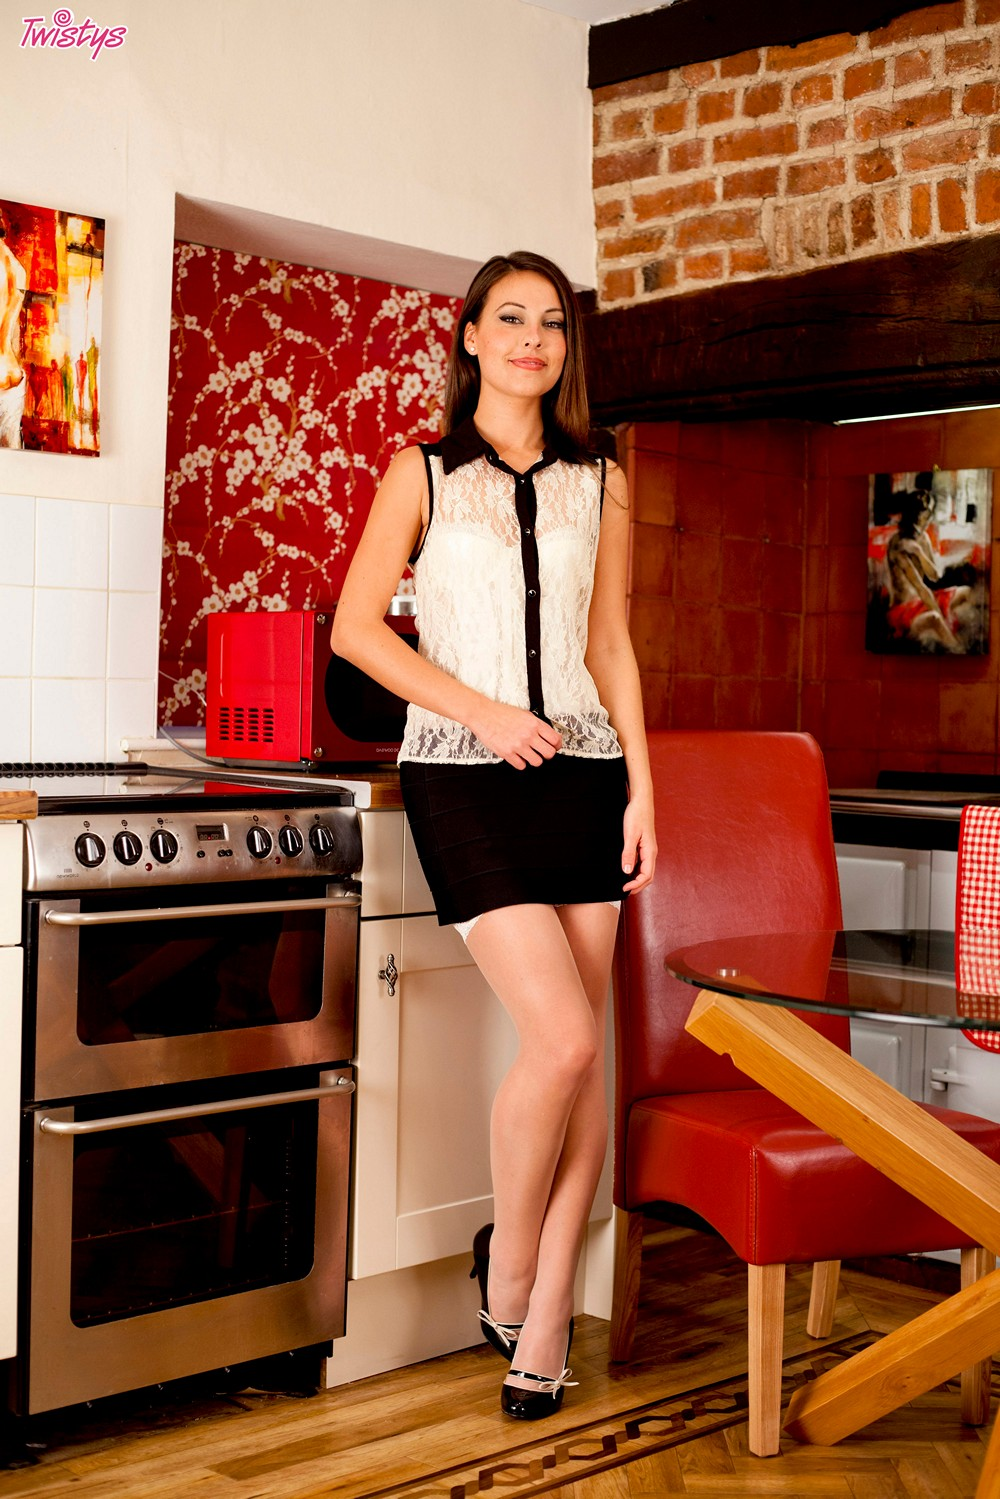 Twistys - Lorena - Let's Get Busy - 貼圖 - 歐美寫真 -